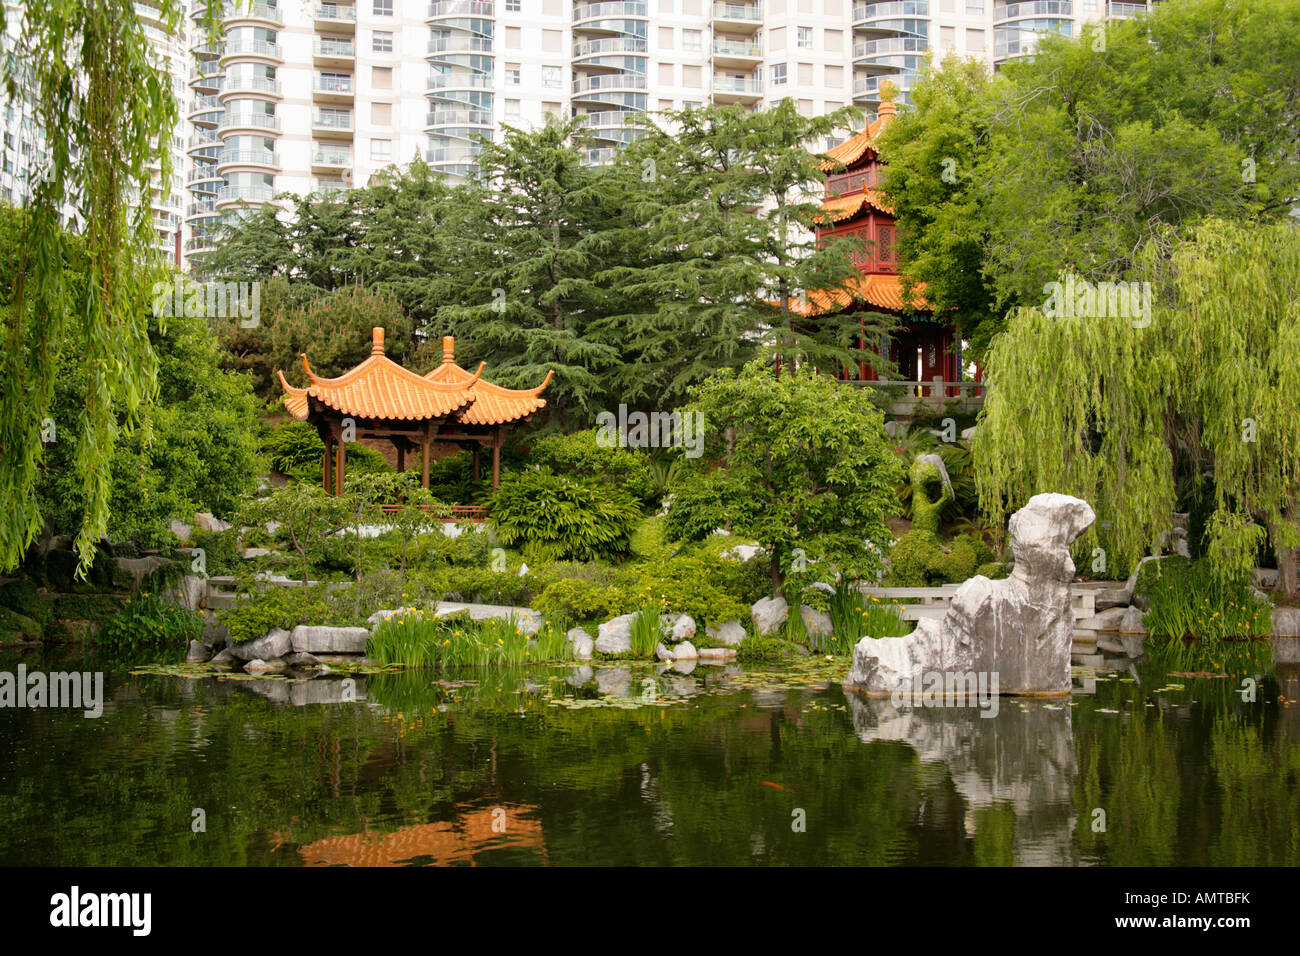 Lake With Rock Sculptures Pavilionsand Modern Highrise BuildingsChinese Garden Of Friendship